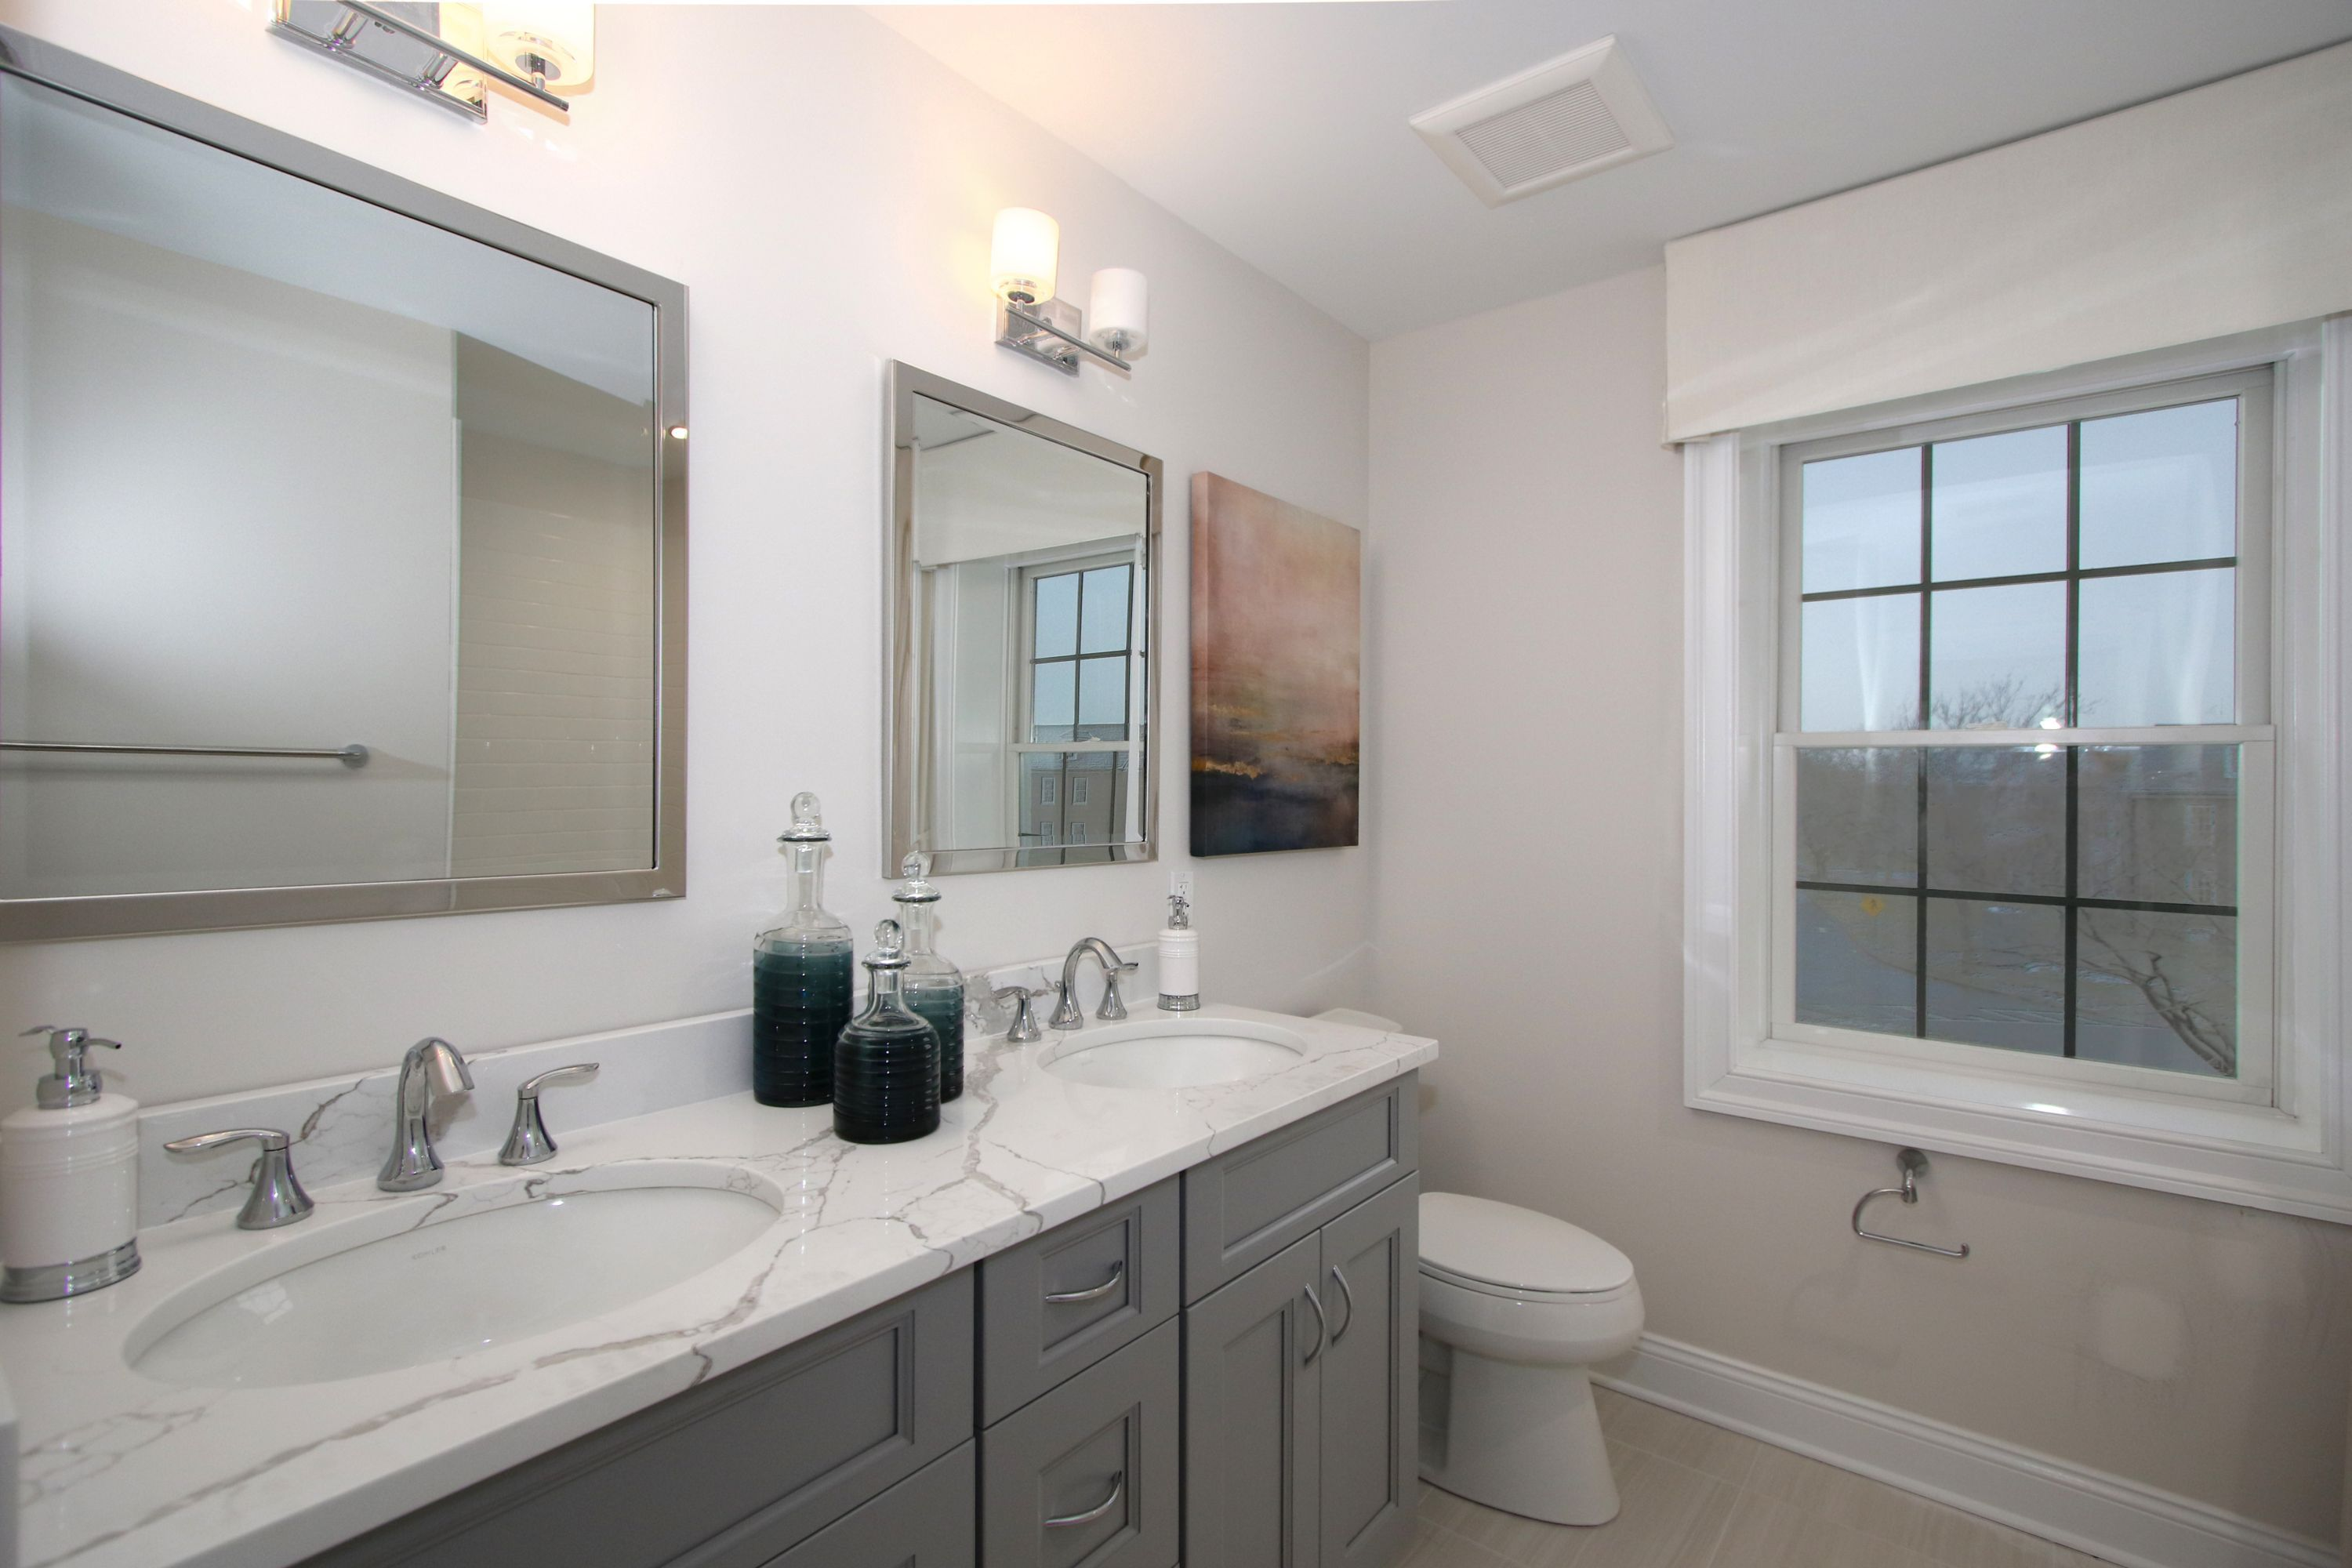 Bathroom featured in the Monmouth E By RPM Development Group in Monmouth County, NJ